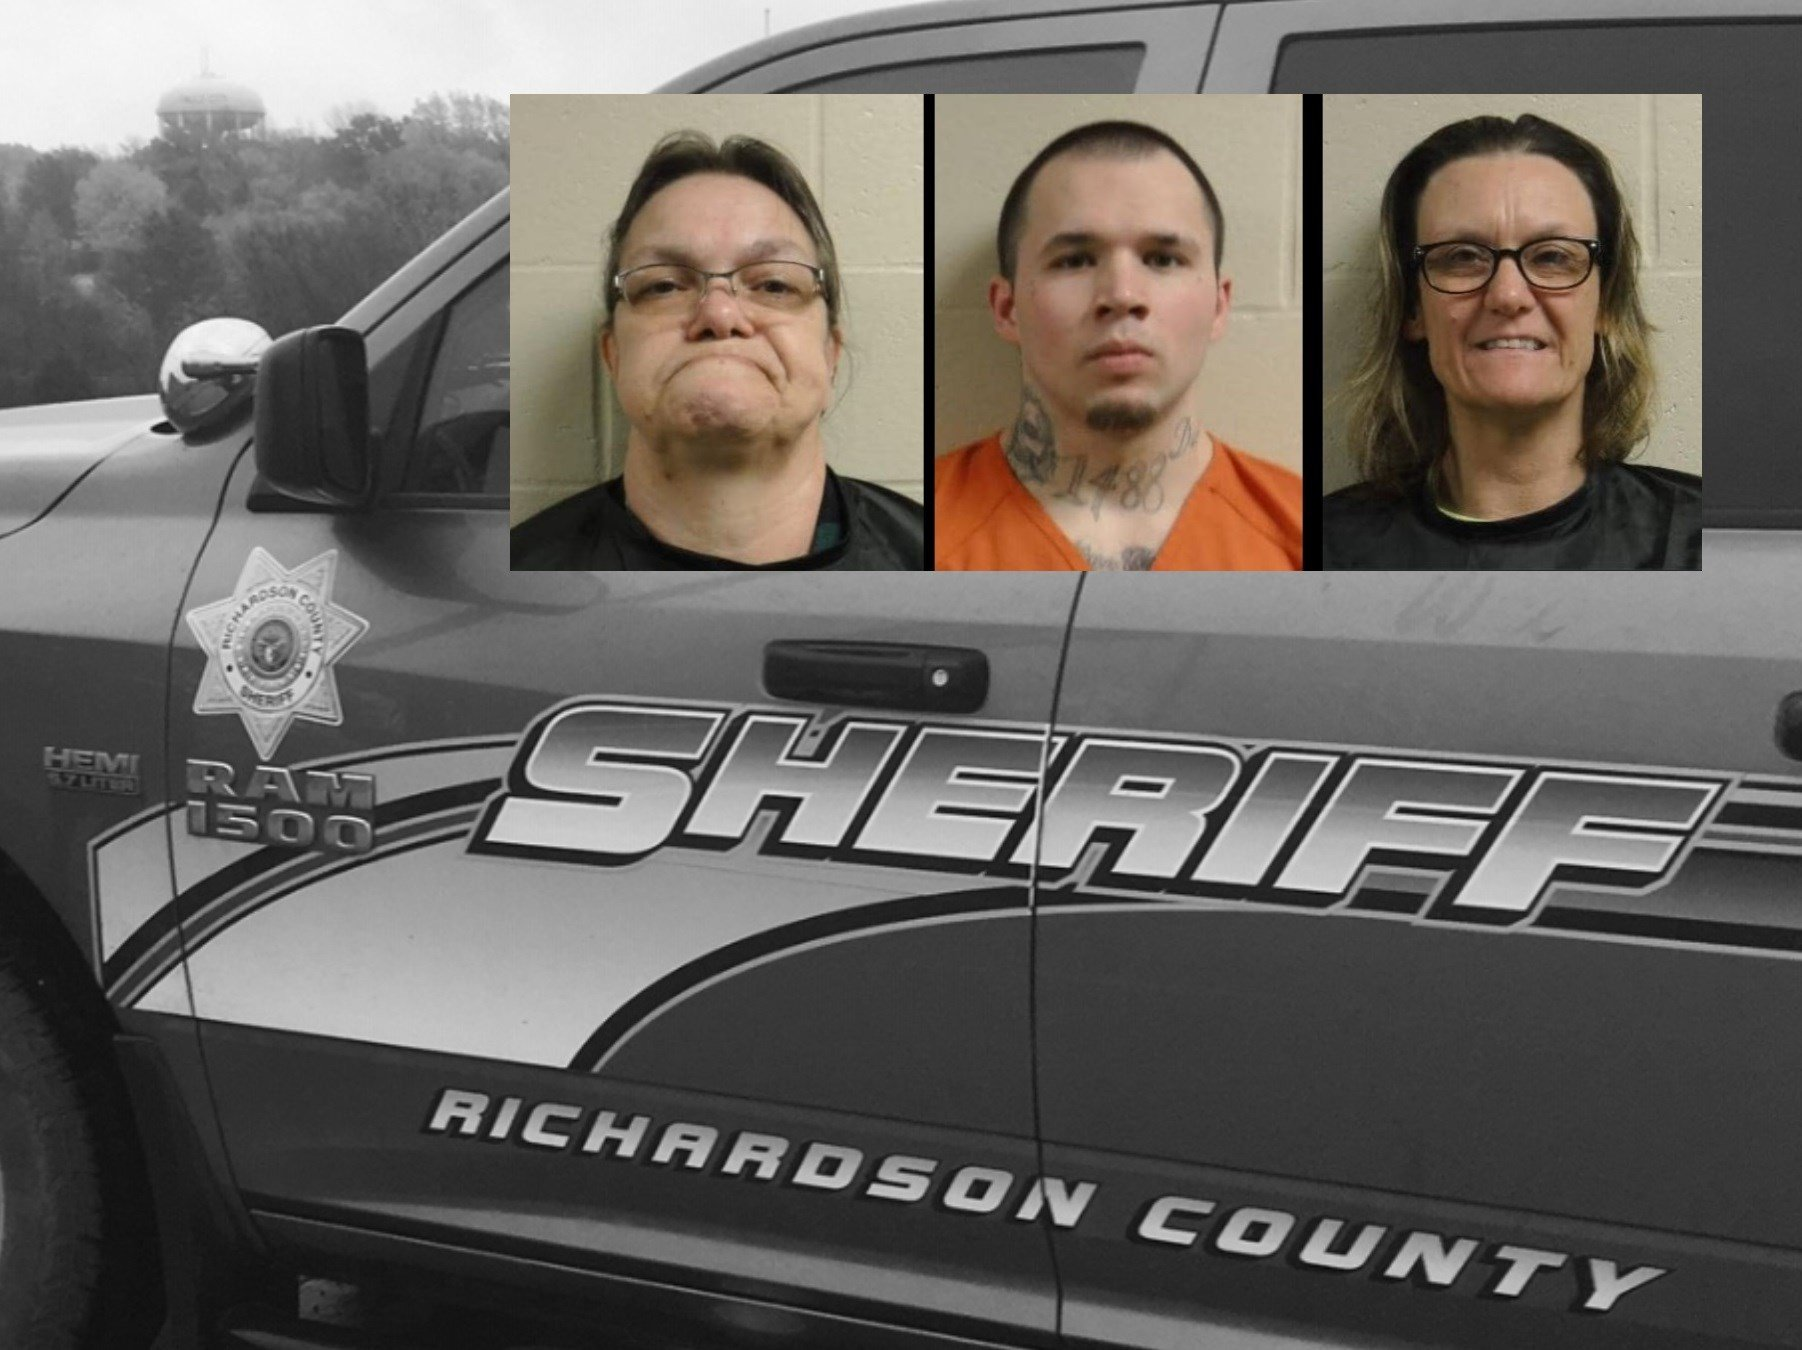 Investigations lead to multiple warrants